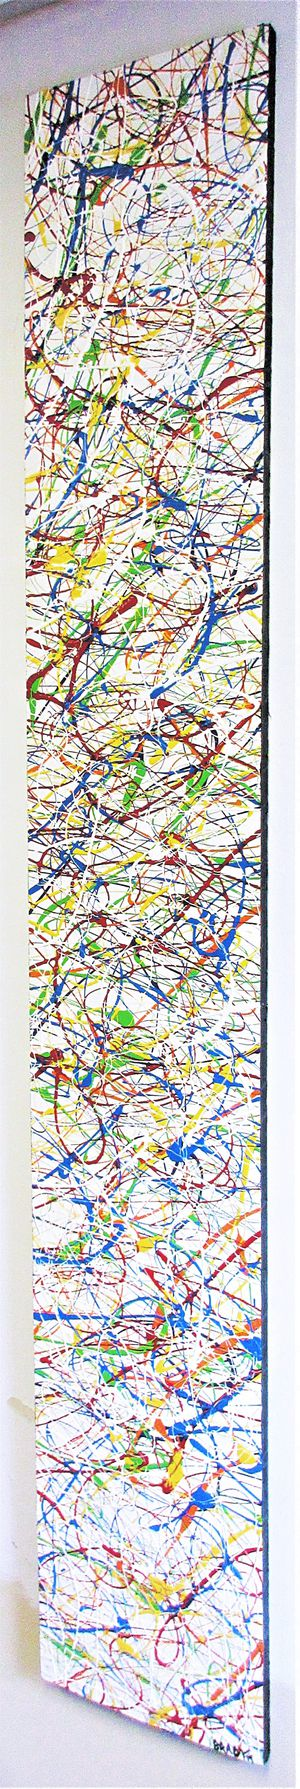 """72""""x 12"""" ORIGINAL SIGNED PAINTING. ACRYLIC ON BOARD. BRACKETS APPLIED ALLOWING PAINTING TO HANG EITHER WAY! SHIPPING IS AVAILABLE! for Sale in Cincinnati, OH"""